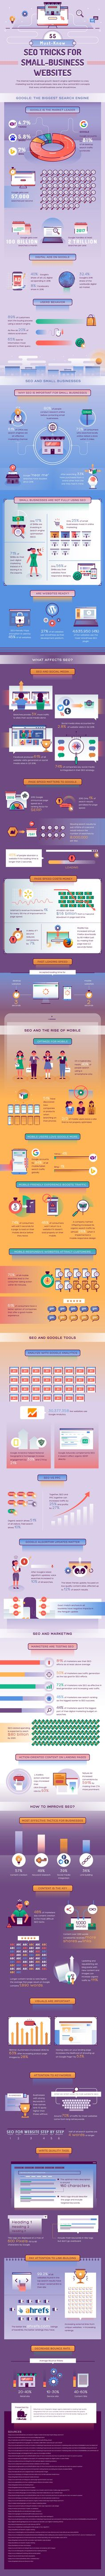 55 Must-Know SEO Tricks for Business Websites: SEO should be a top priority for - SEO Website Analysis - Plan for your SEO and track your keywords rank. - 55 Must-Know SEO Tricks for Business Websites: SEO should be a top priority for your company. Inbound Marketing, Marketing Tools, Business Marketing, Internet Marketing, Content Marketing, Media Marketing, Business Infographics, Marketing Strategies, Website Analysis